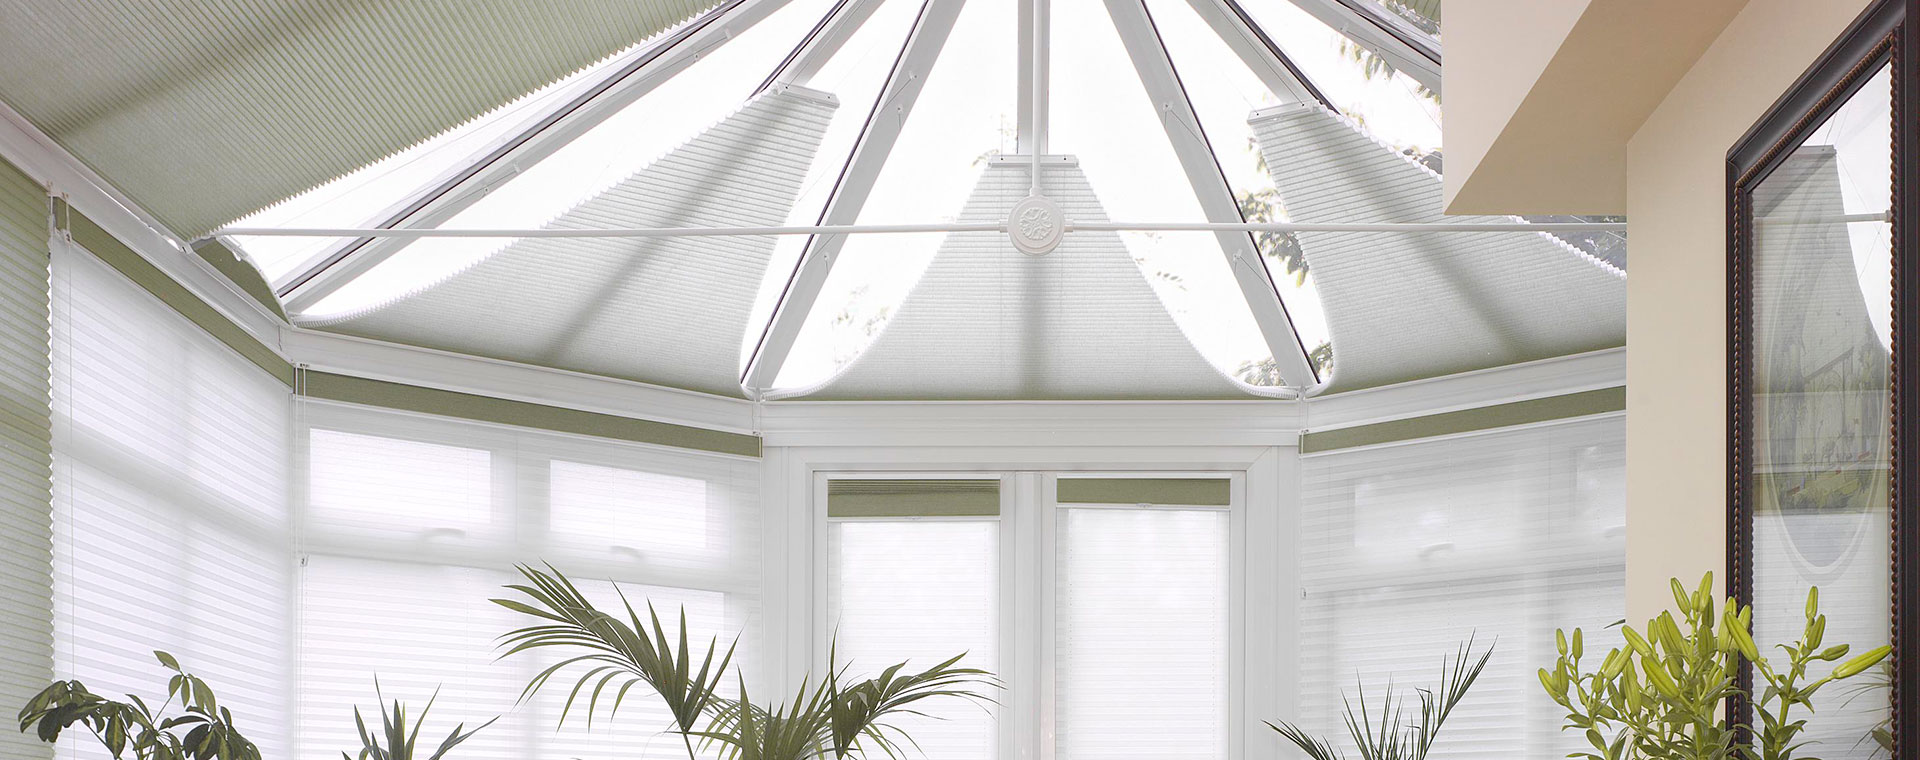 Conservatory Blinds Slide 3